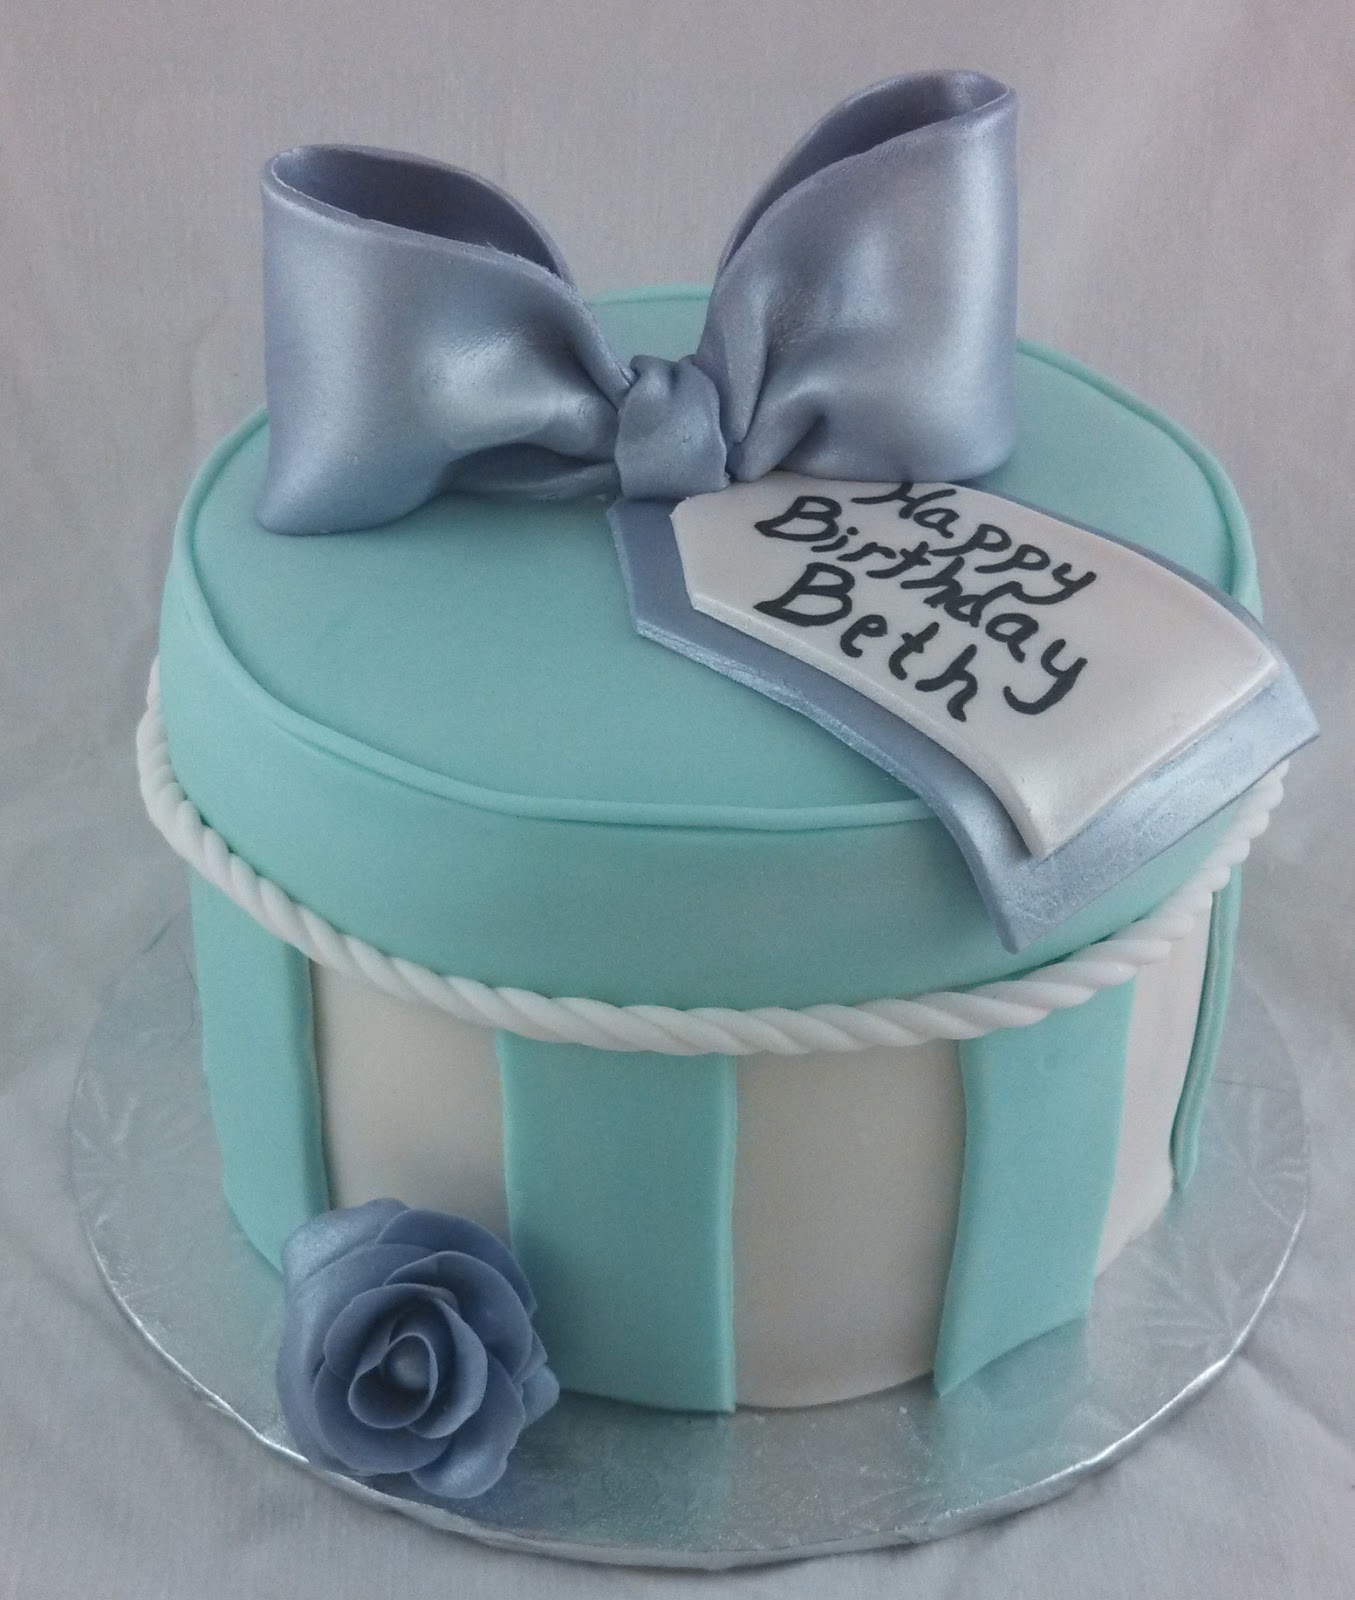 Cake Ideas From Cake Box : Sugar & Spice Sweets: Round Gift Box Cake